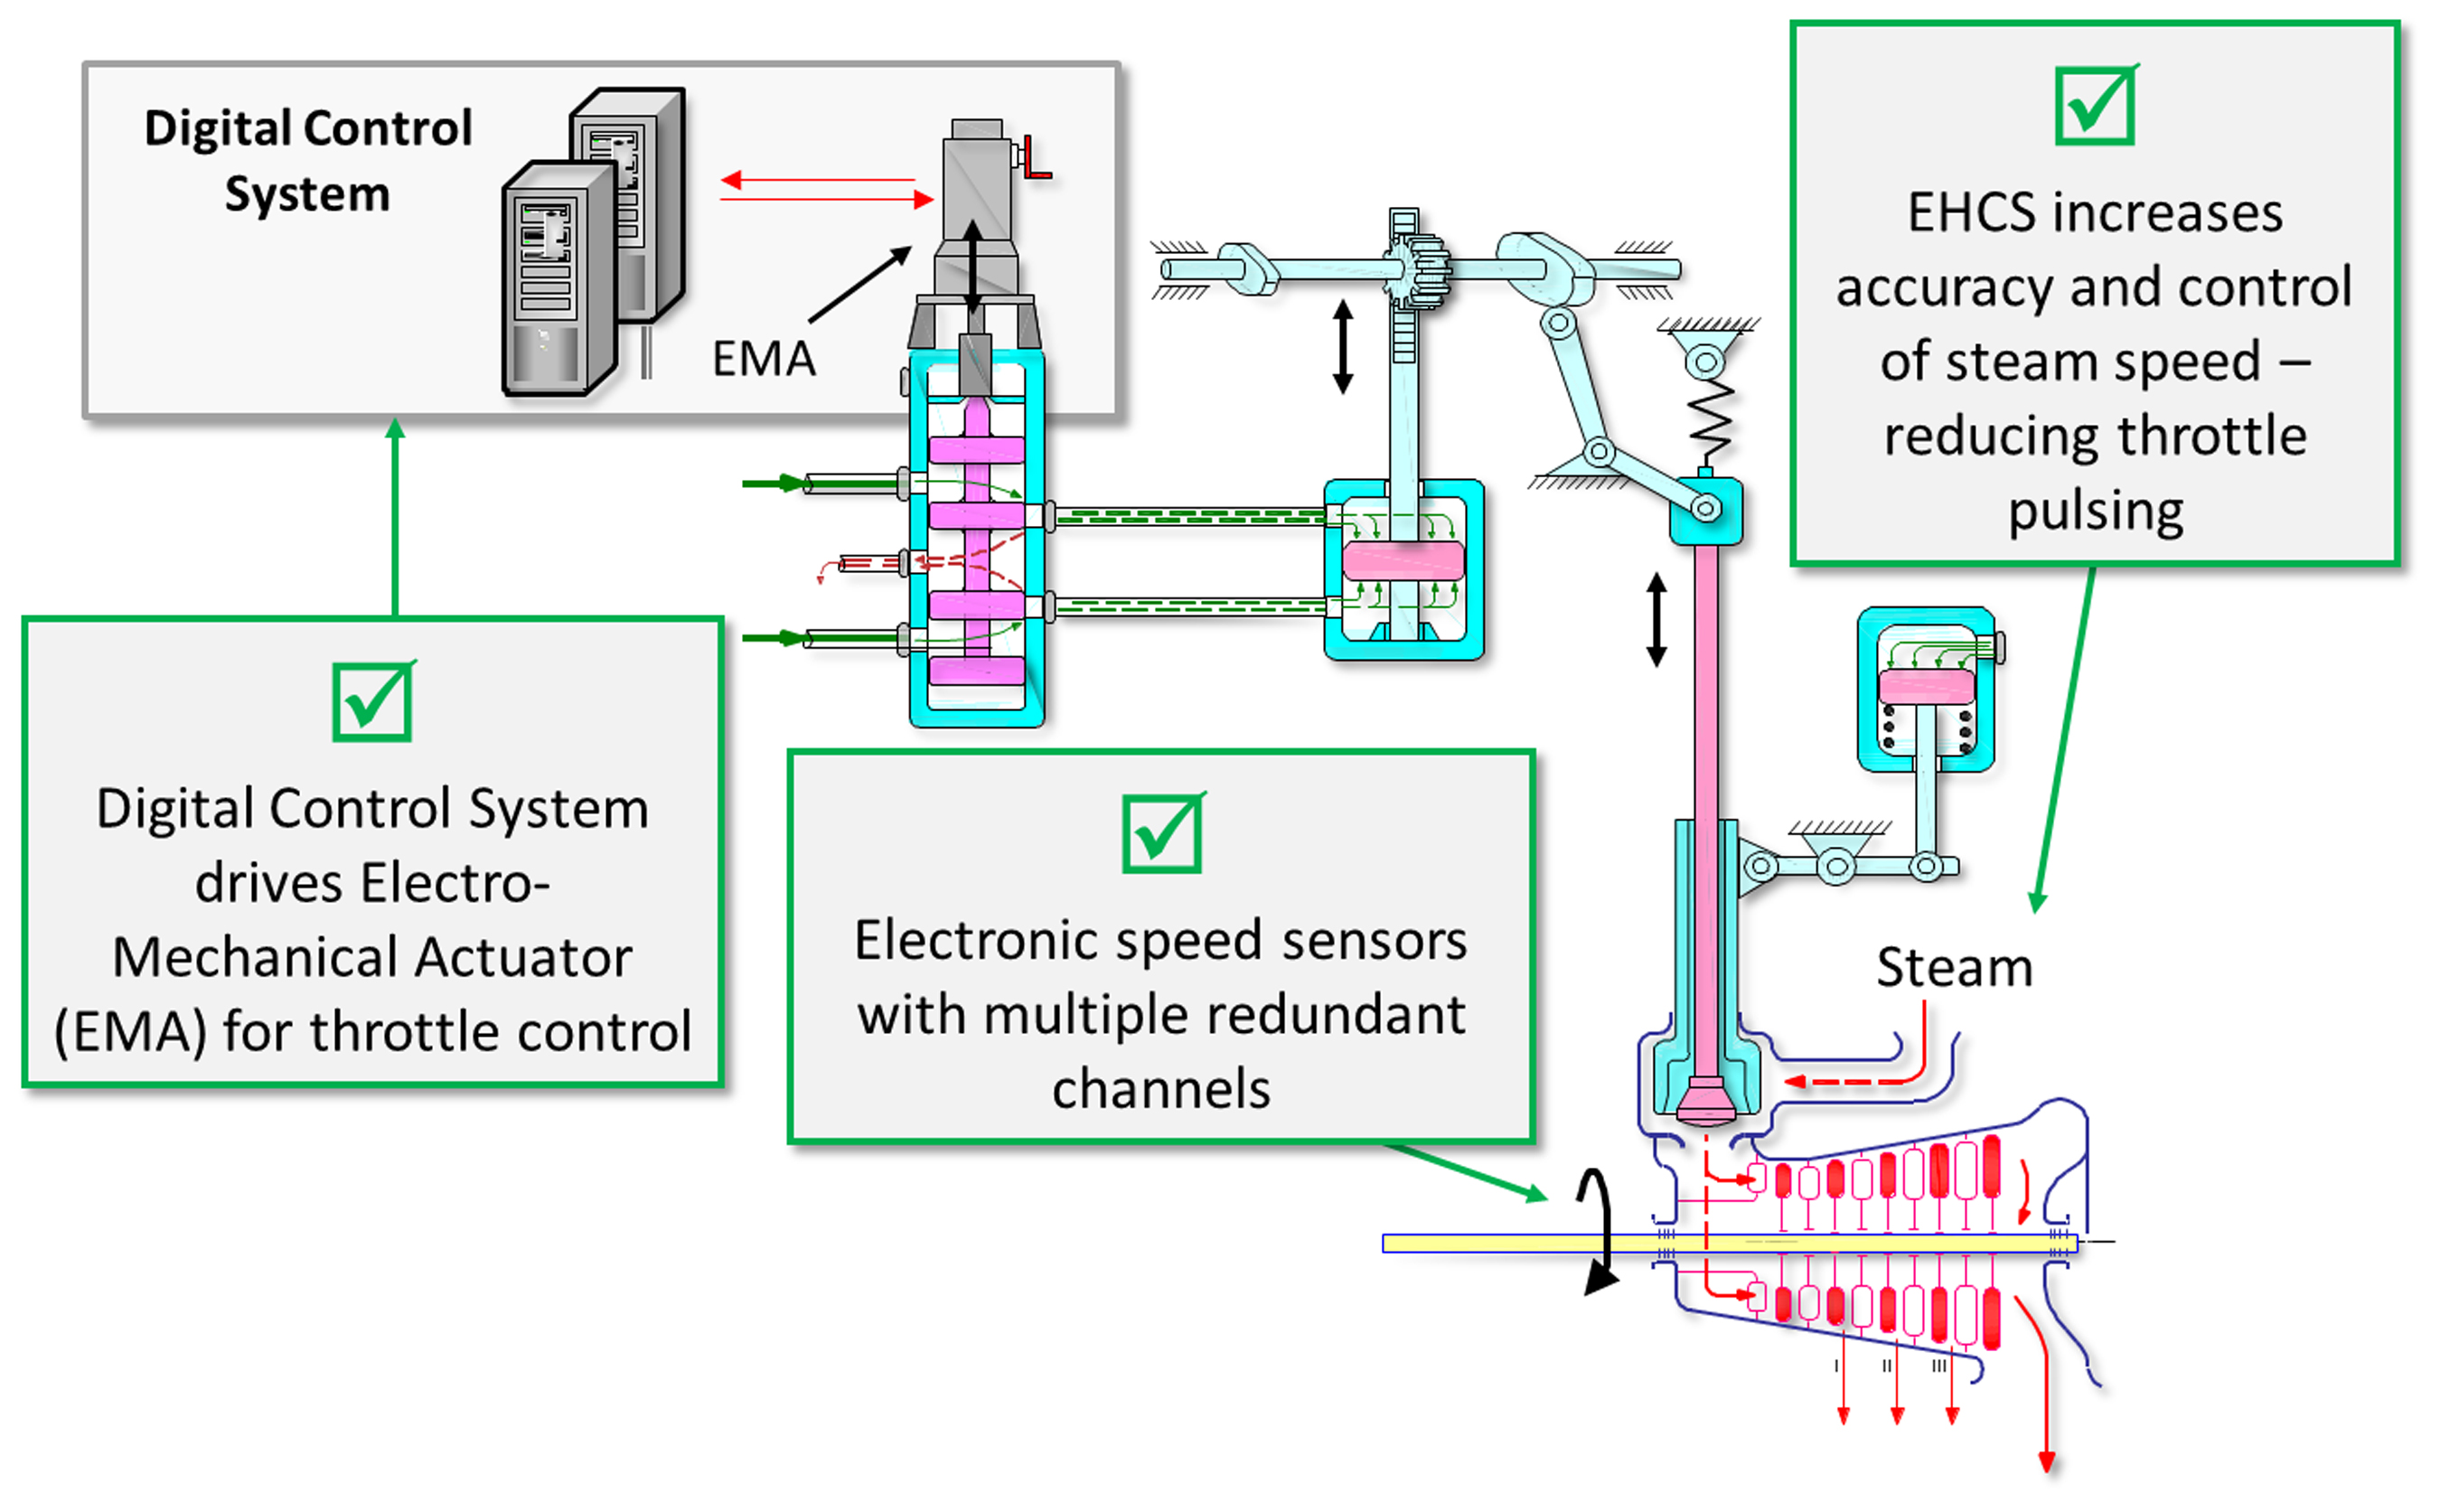 Nuclear Solutions Diagram Of A Typical Hydraulic System The Dynamics Figure 1 Electro Control